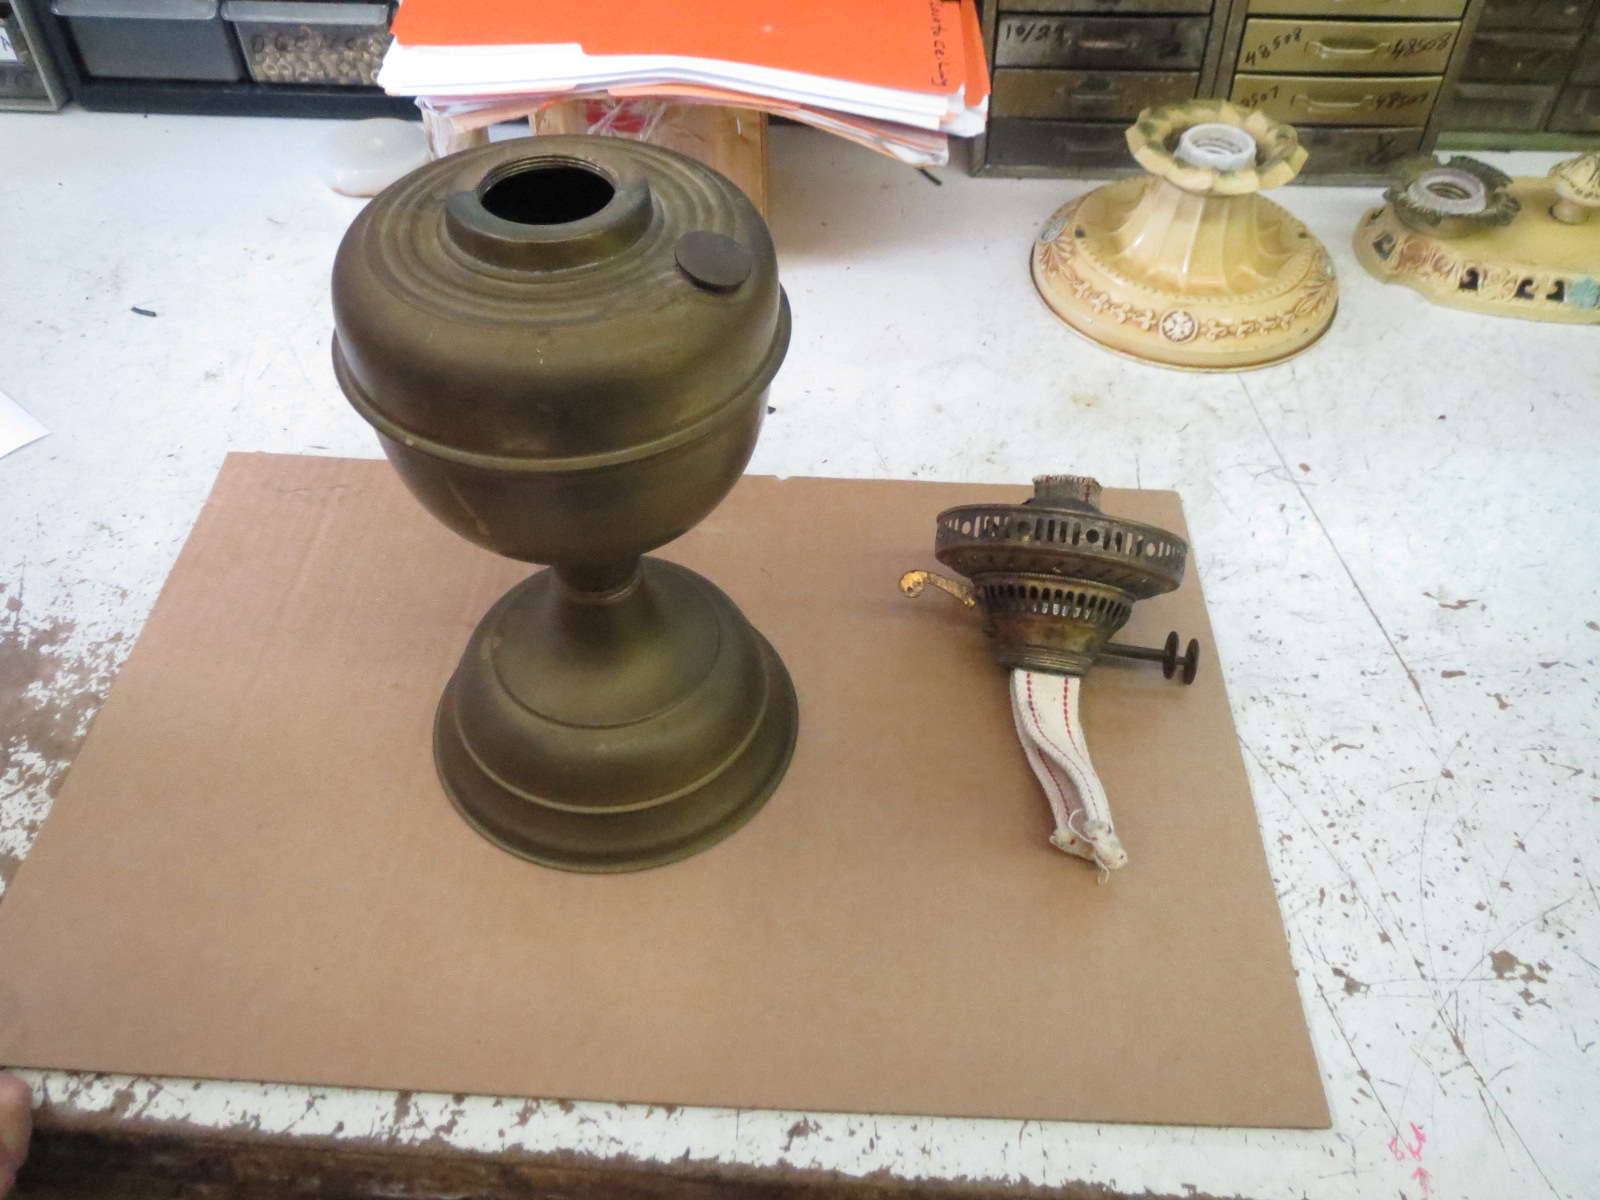 Lamp Parts and Repair | Lamp Doctor: Converting an Old ...